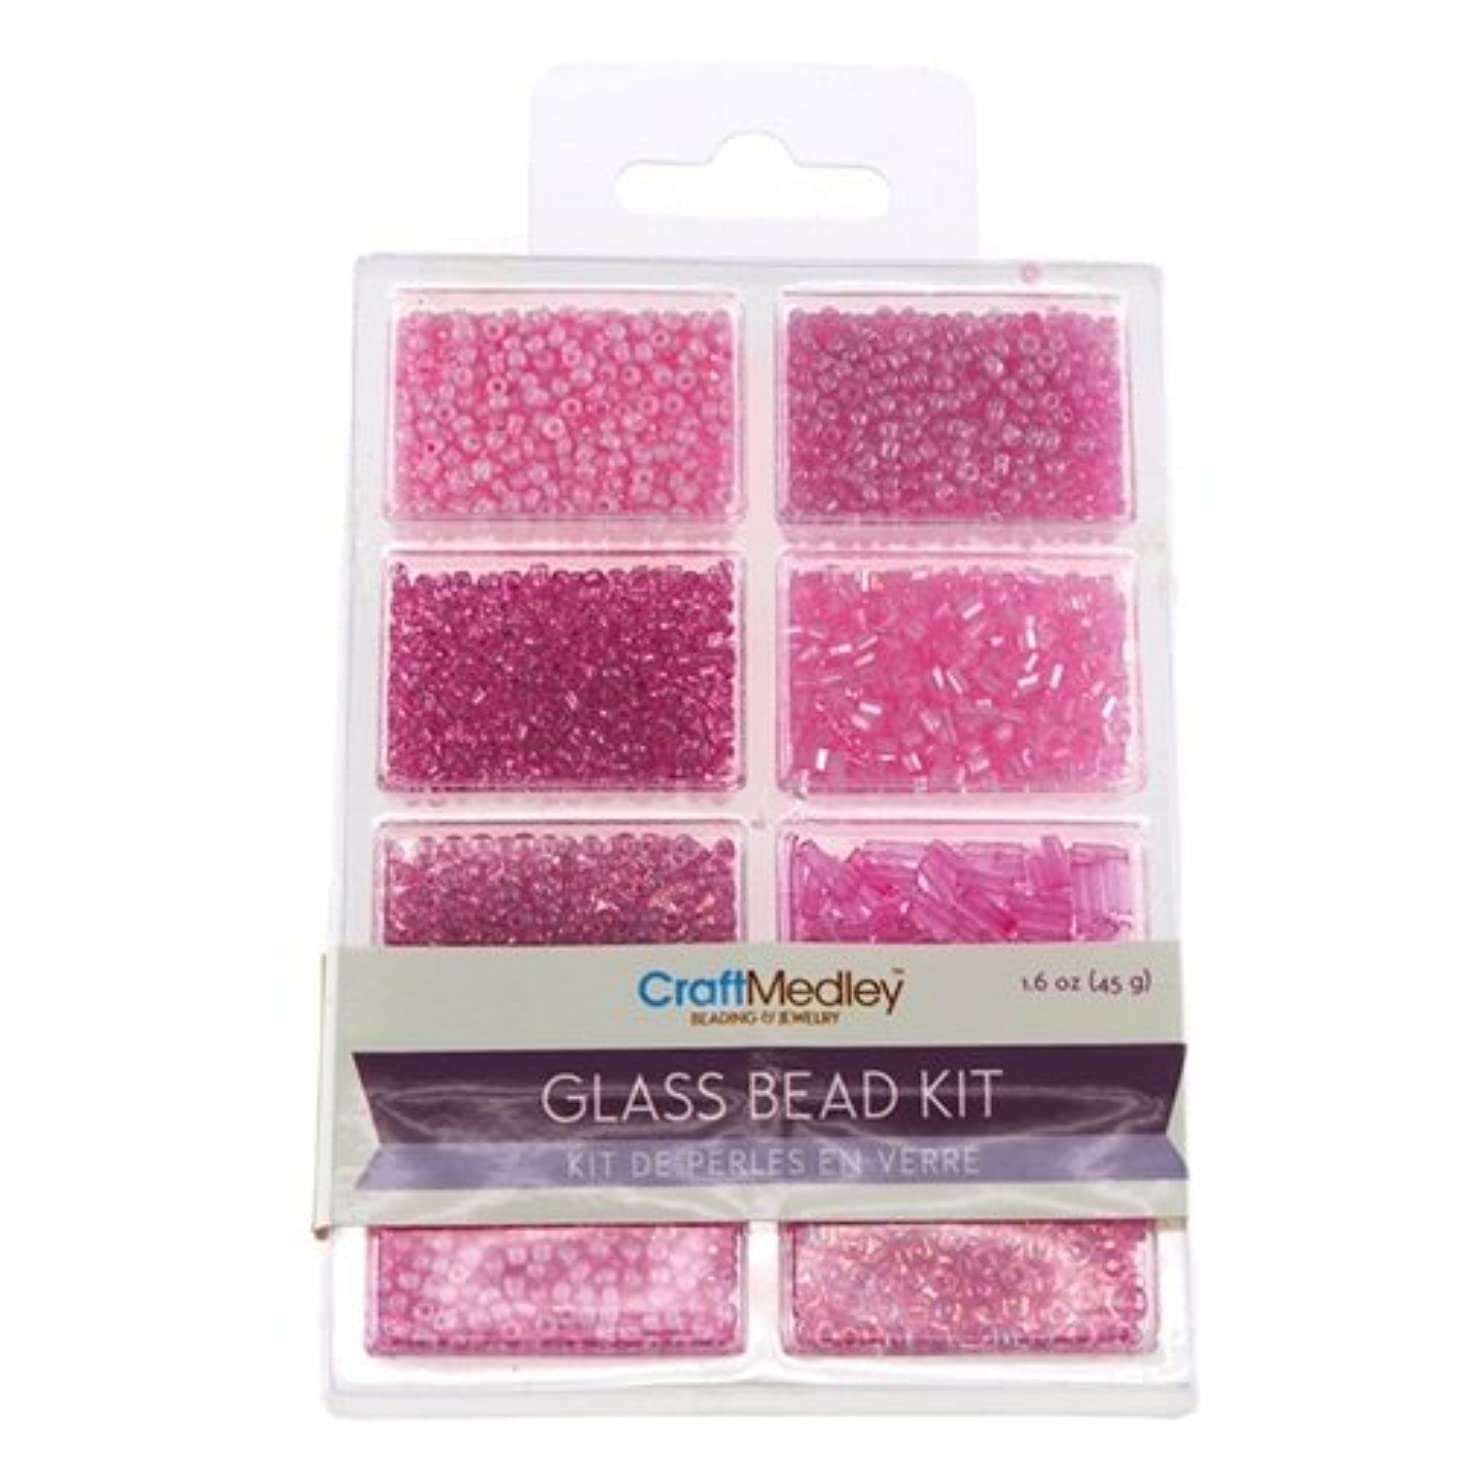 Homeford Firefly Imports Loose Glass Beads Kit, 45-Gram, Blush, 45g,